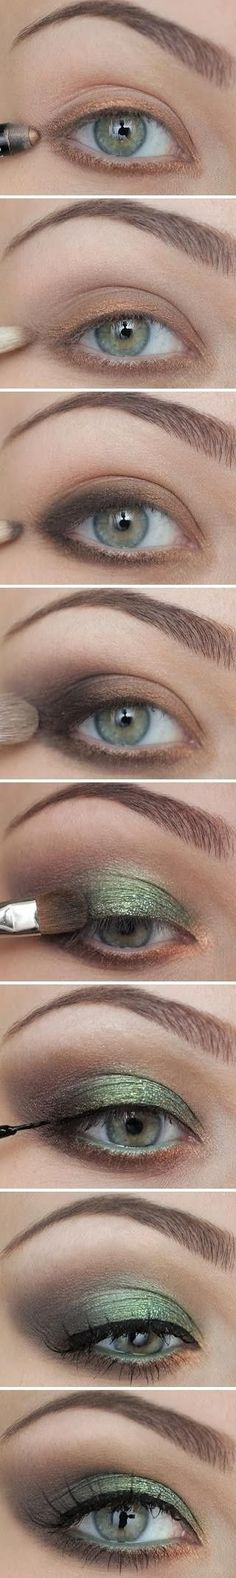 I've been looking for a green smokey eye for awhile now... Looks like this is the winner!